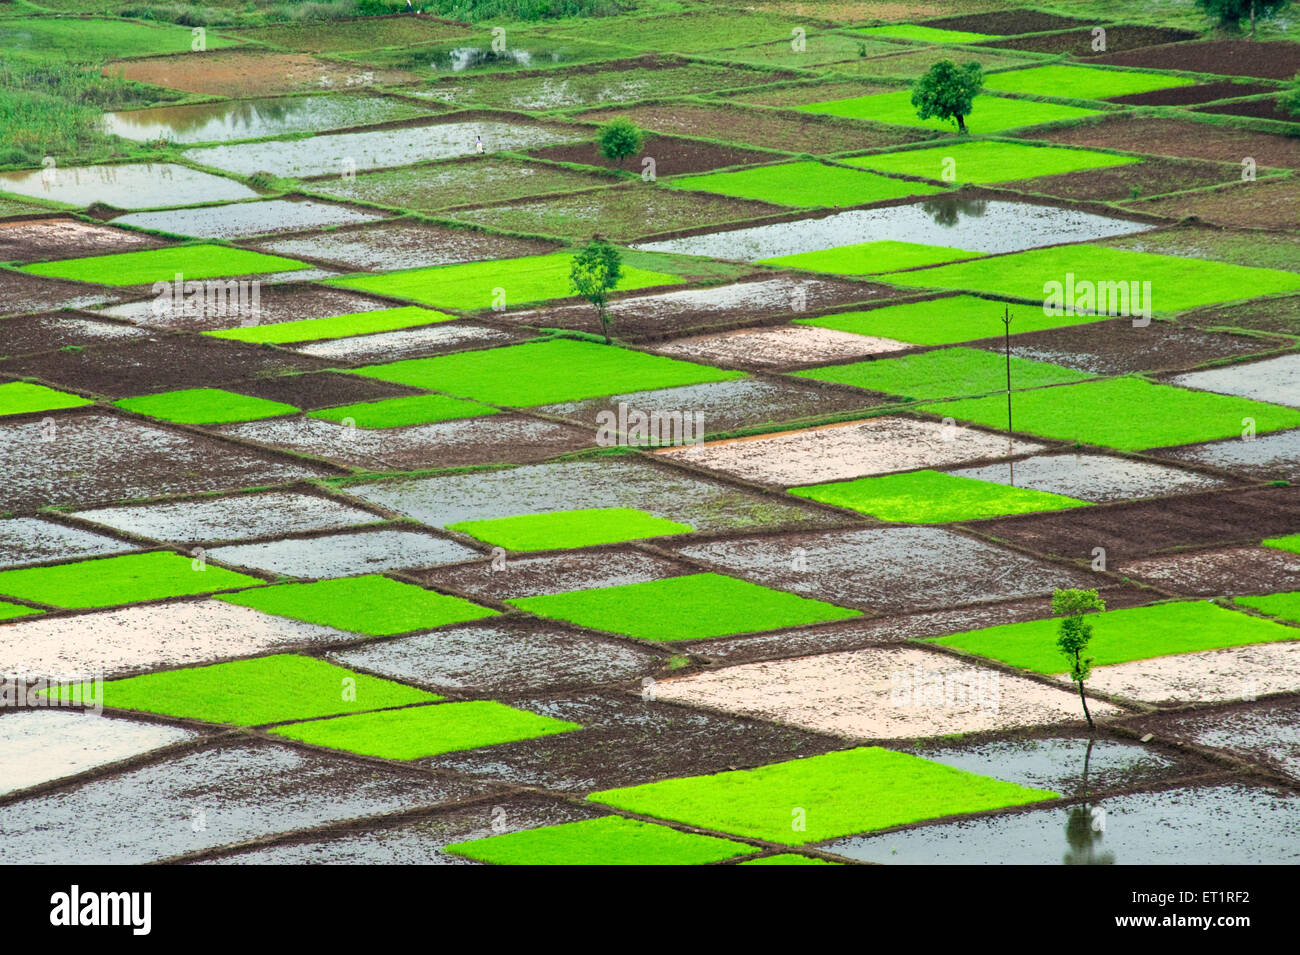 Paddy rice field in squares pattern in monsoon Chiplun Ratnagiri Maharashtra India - Stock Image